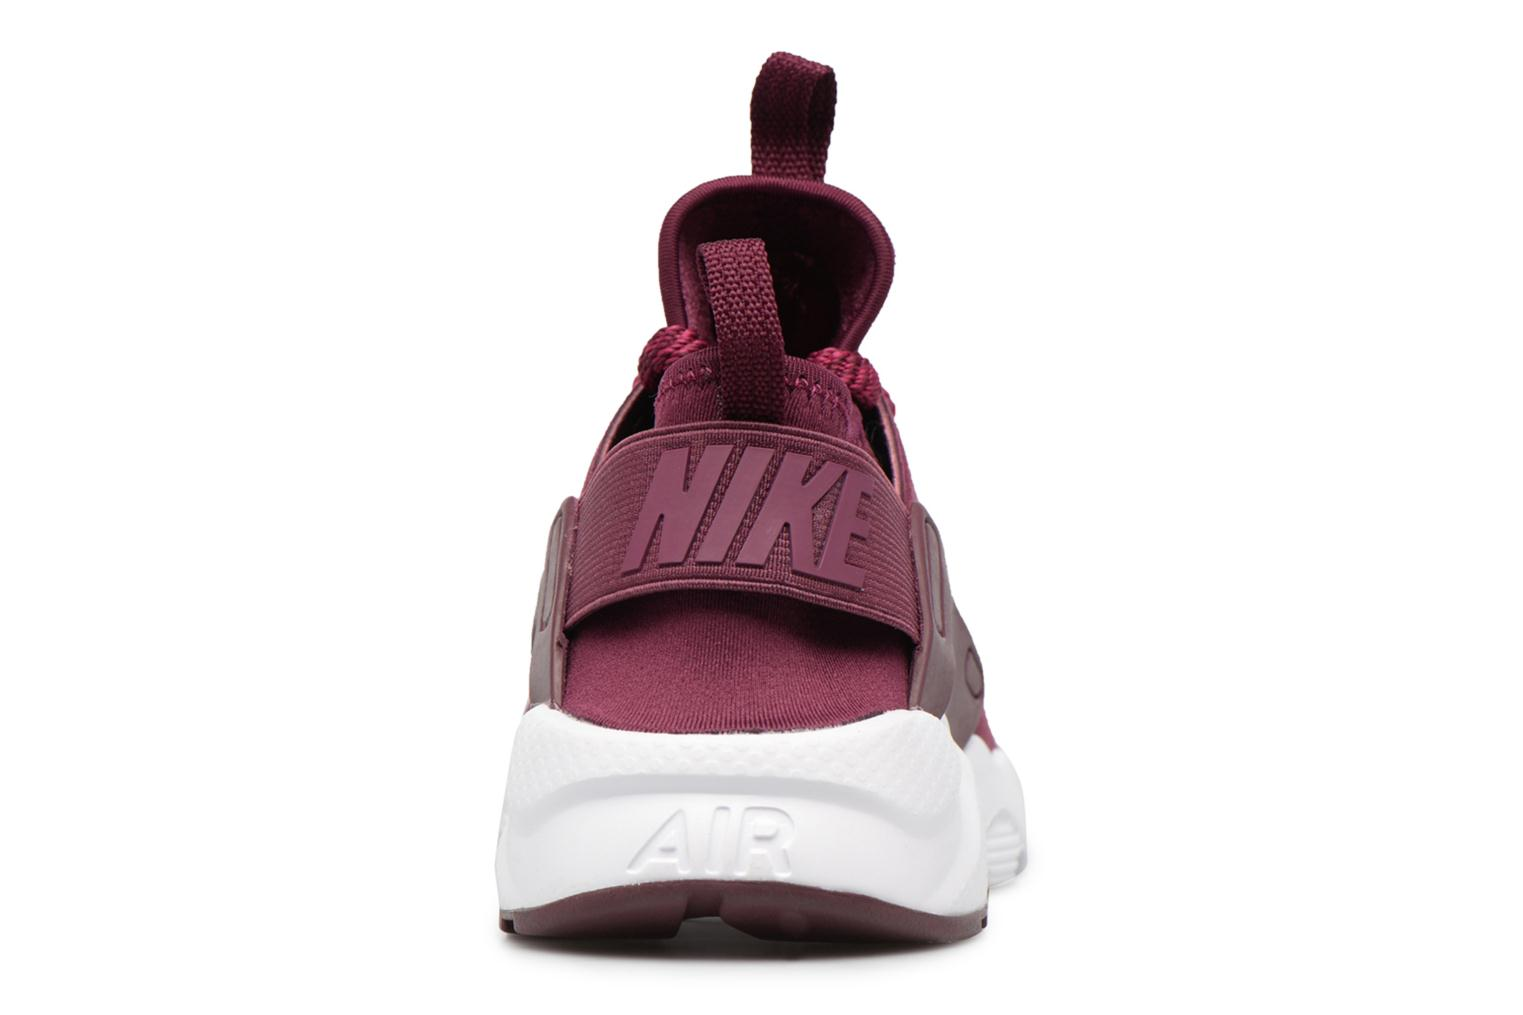 Bordeaux/Bordeaux-Tea Berry-Black Nike Air Huarache Run Ultra Se (Gs) (Bordeaux)